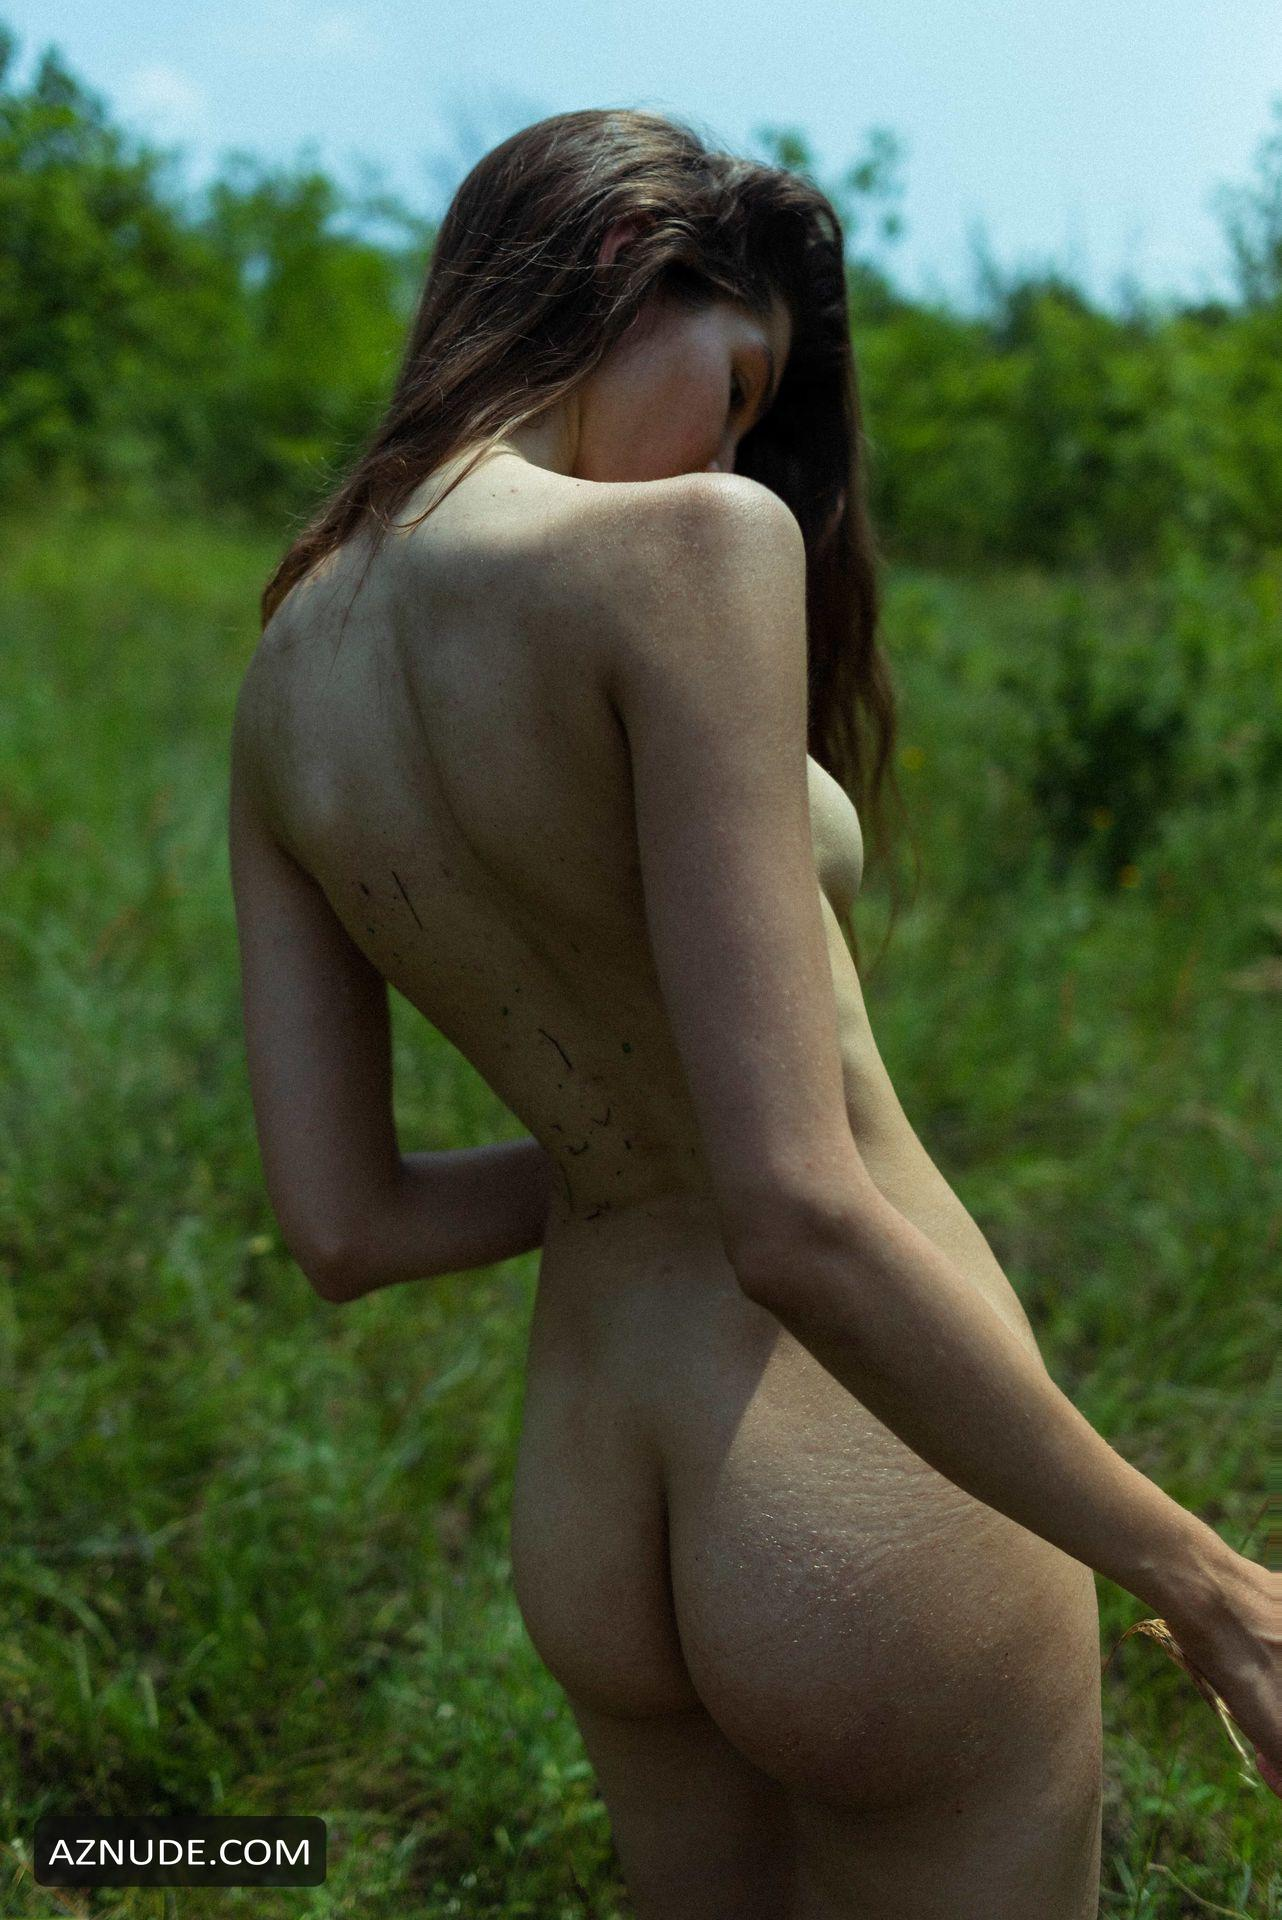 Lina Lorenza Goes Nude In A New Photoshoot By Davide -1457